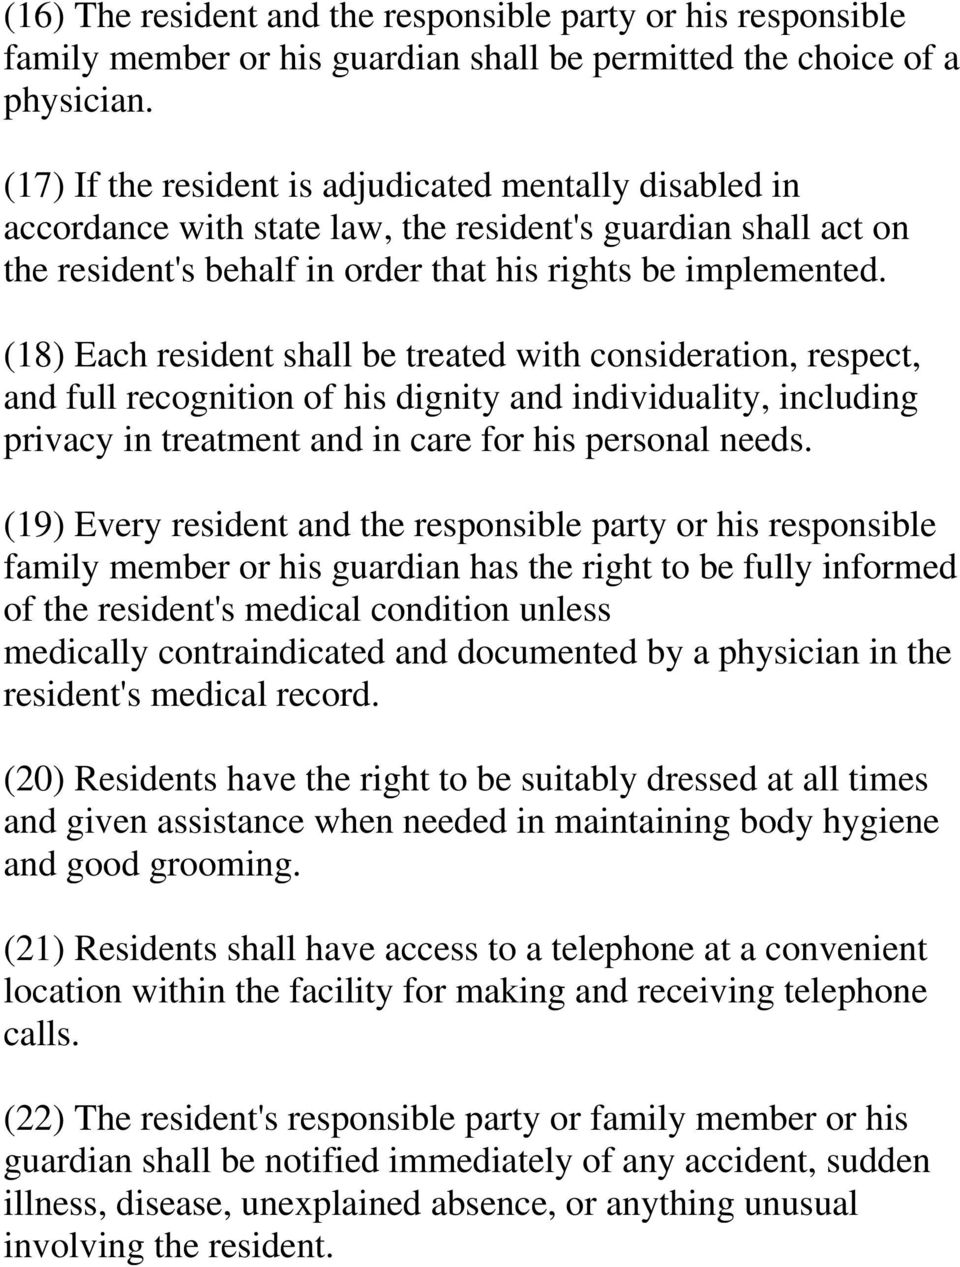 (18) Each resident shall be treated with consideration, respect, and full recognition of his dignity and individuality, including privacy in treatment and in care for his personal needs.